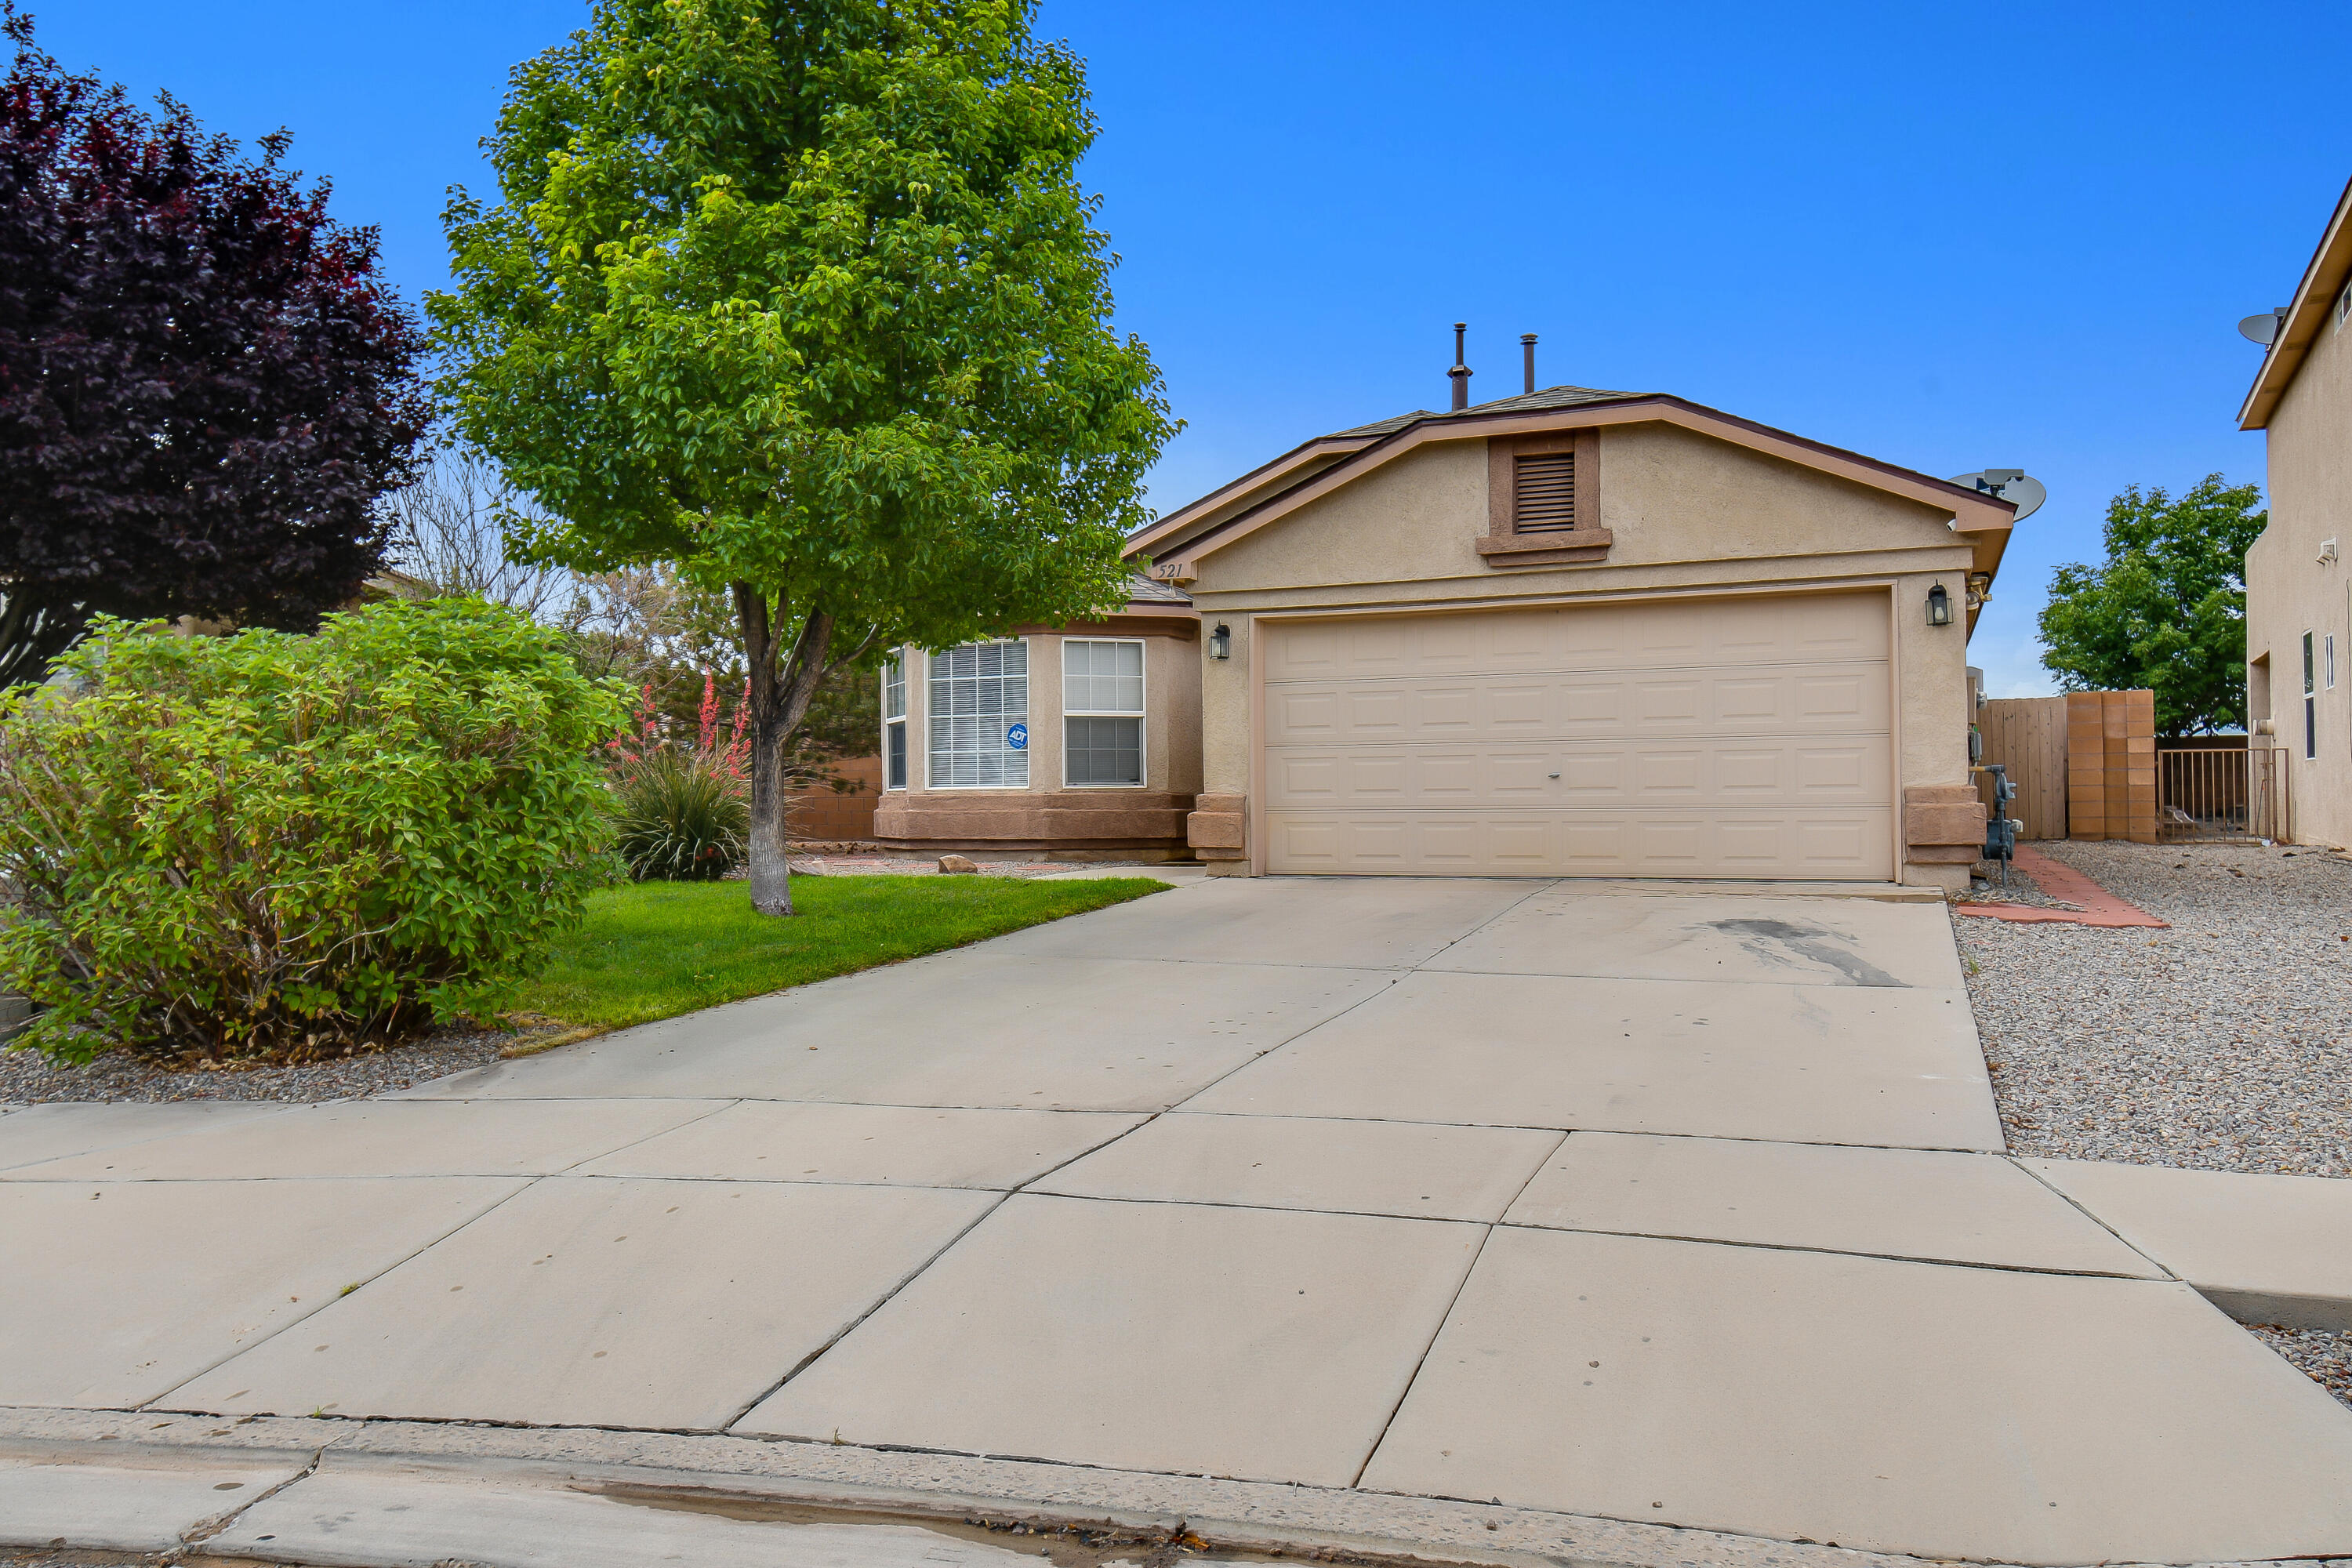 A Perfect Example of A Well-Maintained,Gently-Lived-In Home.This Immaculate Home is in Great Location on a Quiet Cul-De-Sac.An open layout in Northern Meadows Neighborhood located in Sierra Norte Subdivision.Bay windows Add to the Open Feel in this Upgraded Antelope Floor plan with Upgraded Lighting,Ceramic Tile,an Open Kitchen with Bar,Gorgeous Laminate Wood Flooring and Arched Doorways.Crown Molding on Cabinets,Two Full Size Linen Closets,and a Huge Walk-In Closet are Awesome Features.Huge Backyard with Covered Patio and Raised Blocked Wall is Perfect for Private Gatherings with Enough Privacy.Add in the Air-Conditioned Workshop/Storage and What More Could You Want?This Home is Close to Shopping and Schools.With So many Extras,This One is a Must See!Don't Miss Out on This Charming Home!!